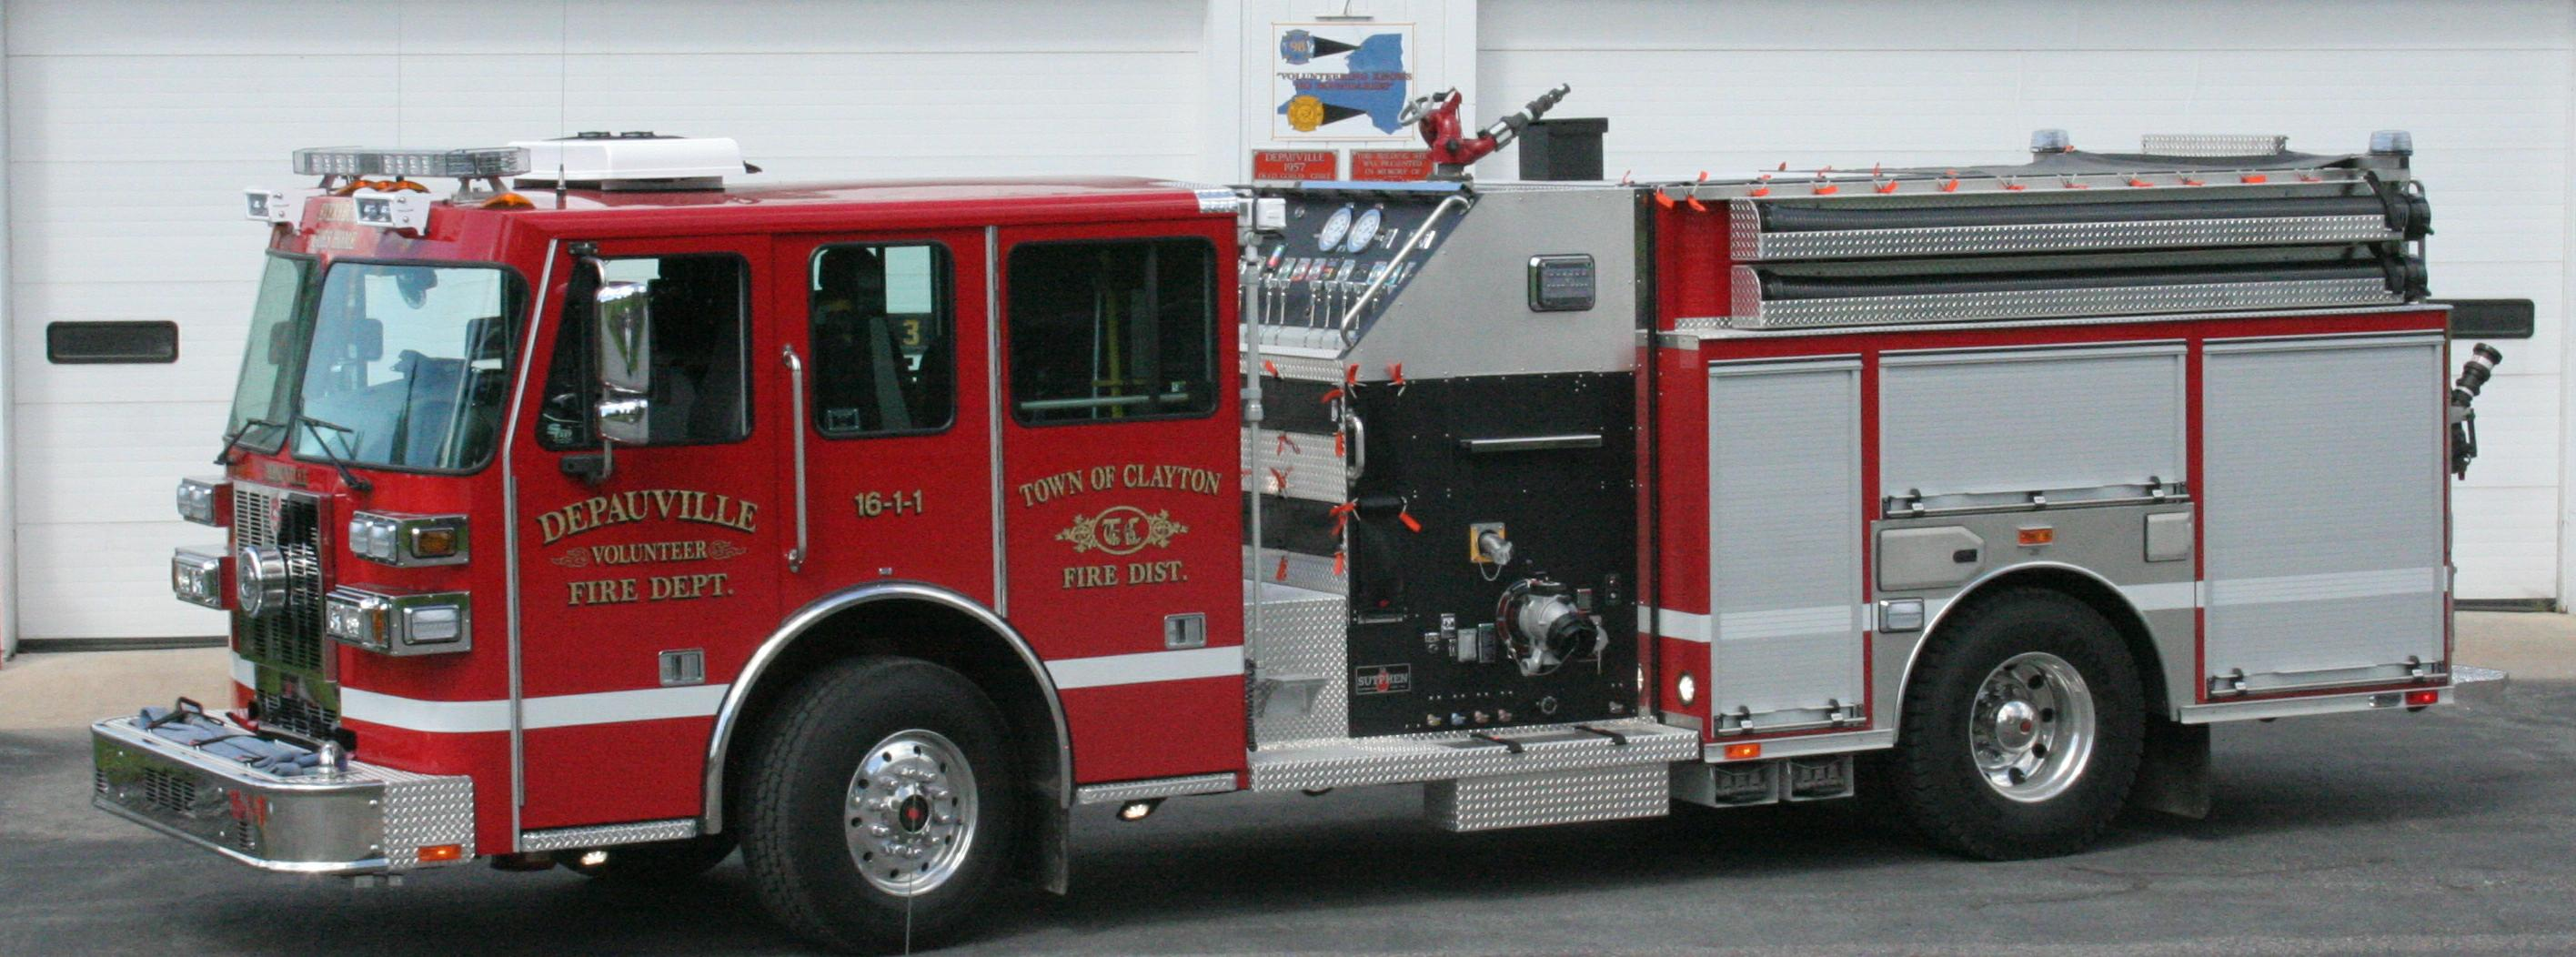 Depauville VFD - 80 Years of Service